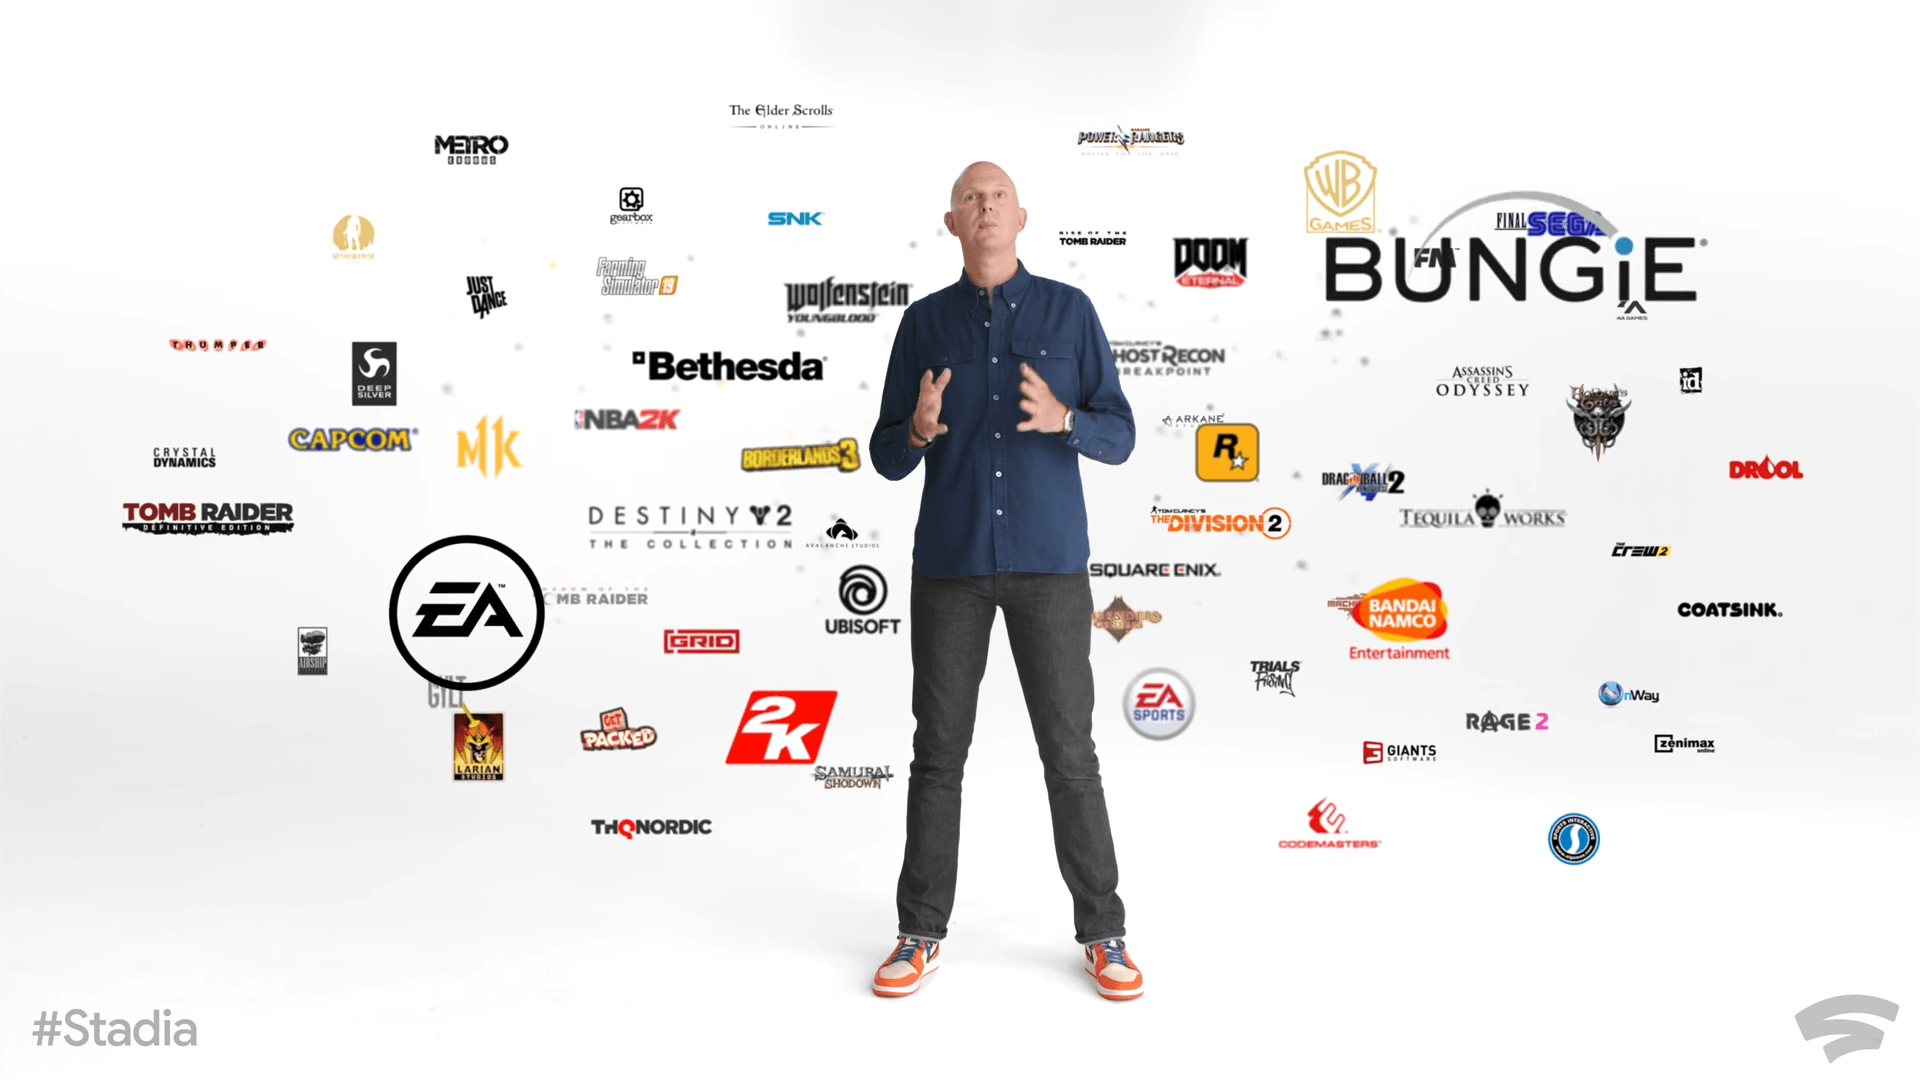 I am interested in seeing what games are going to be on the platform.